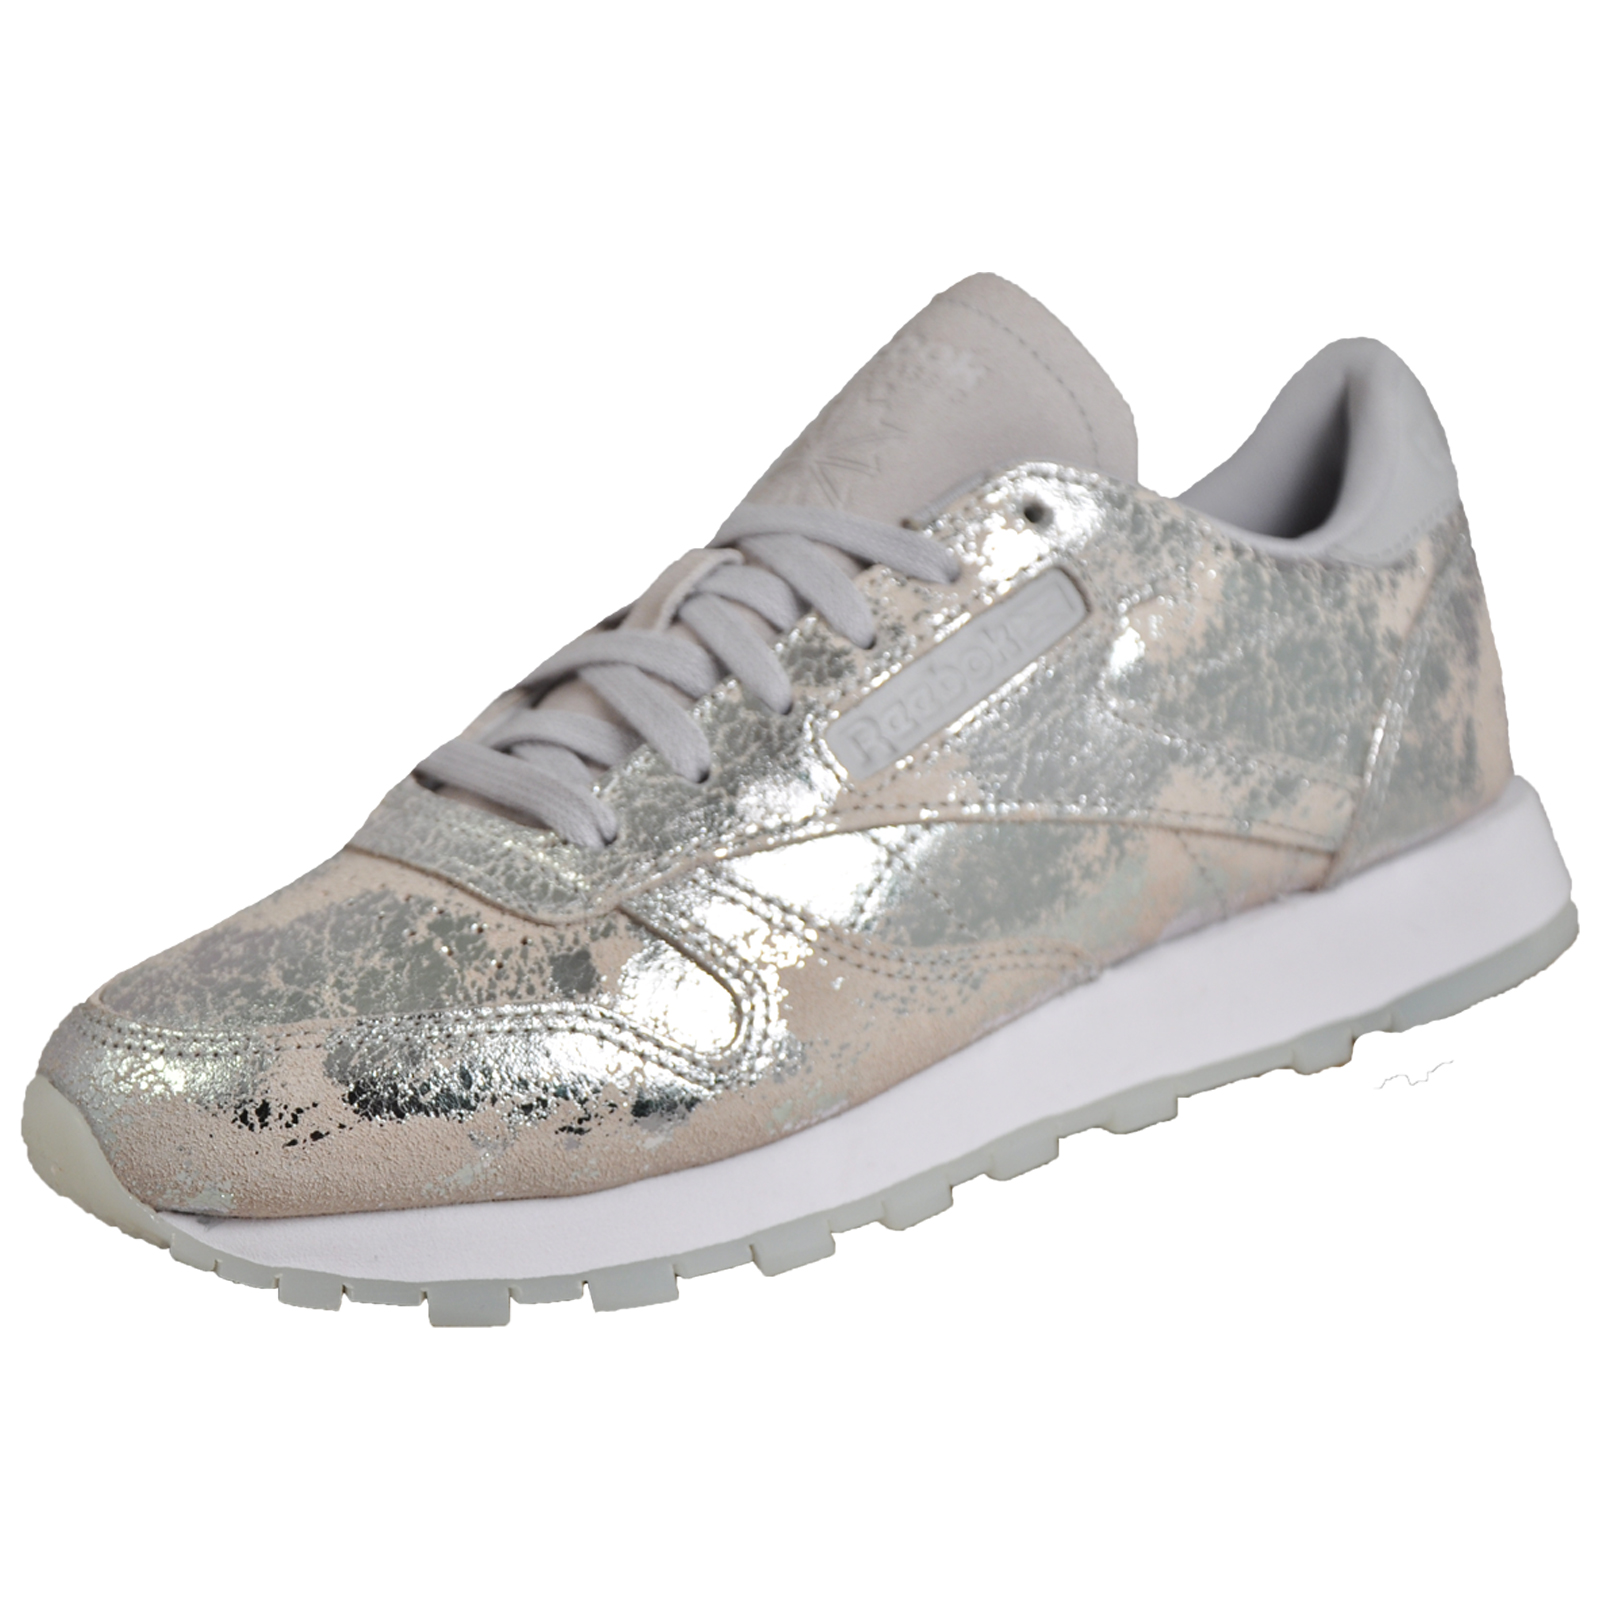 eea3aa1edf2 Details about Reebok Classic CL Leather Hype Women s Girls Casual Retro Trainers  Silver